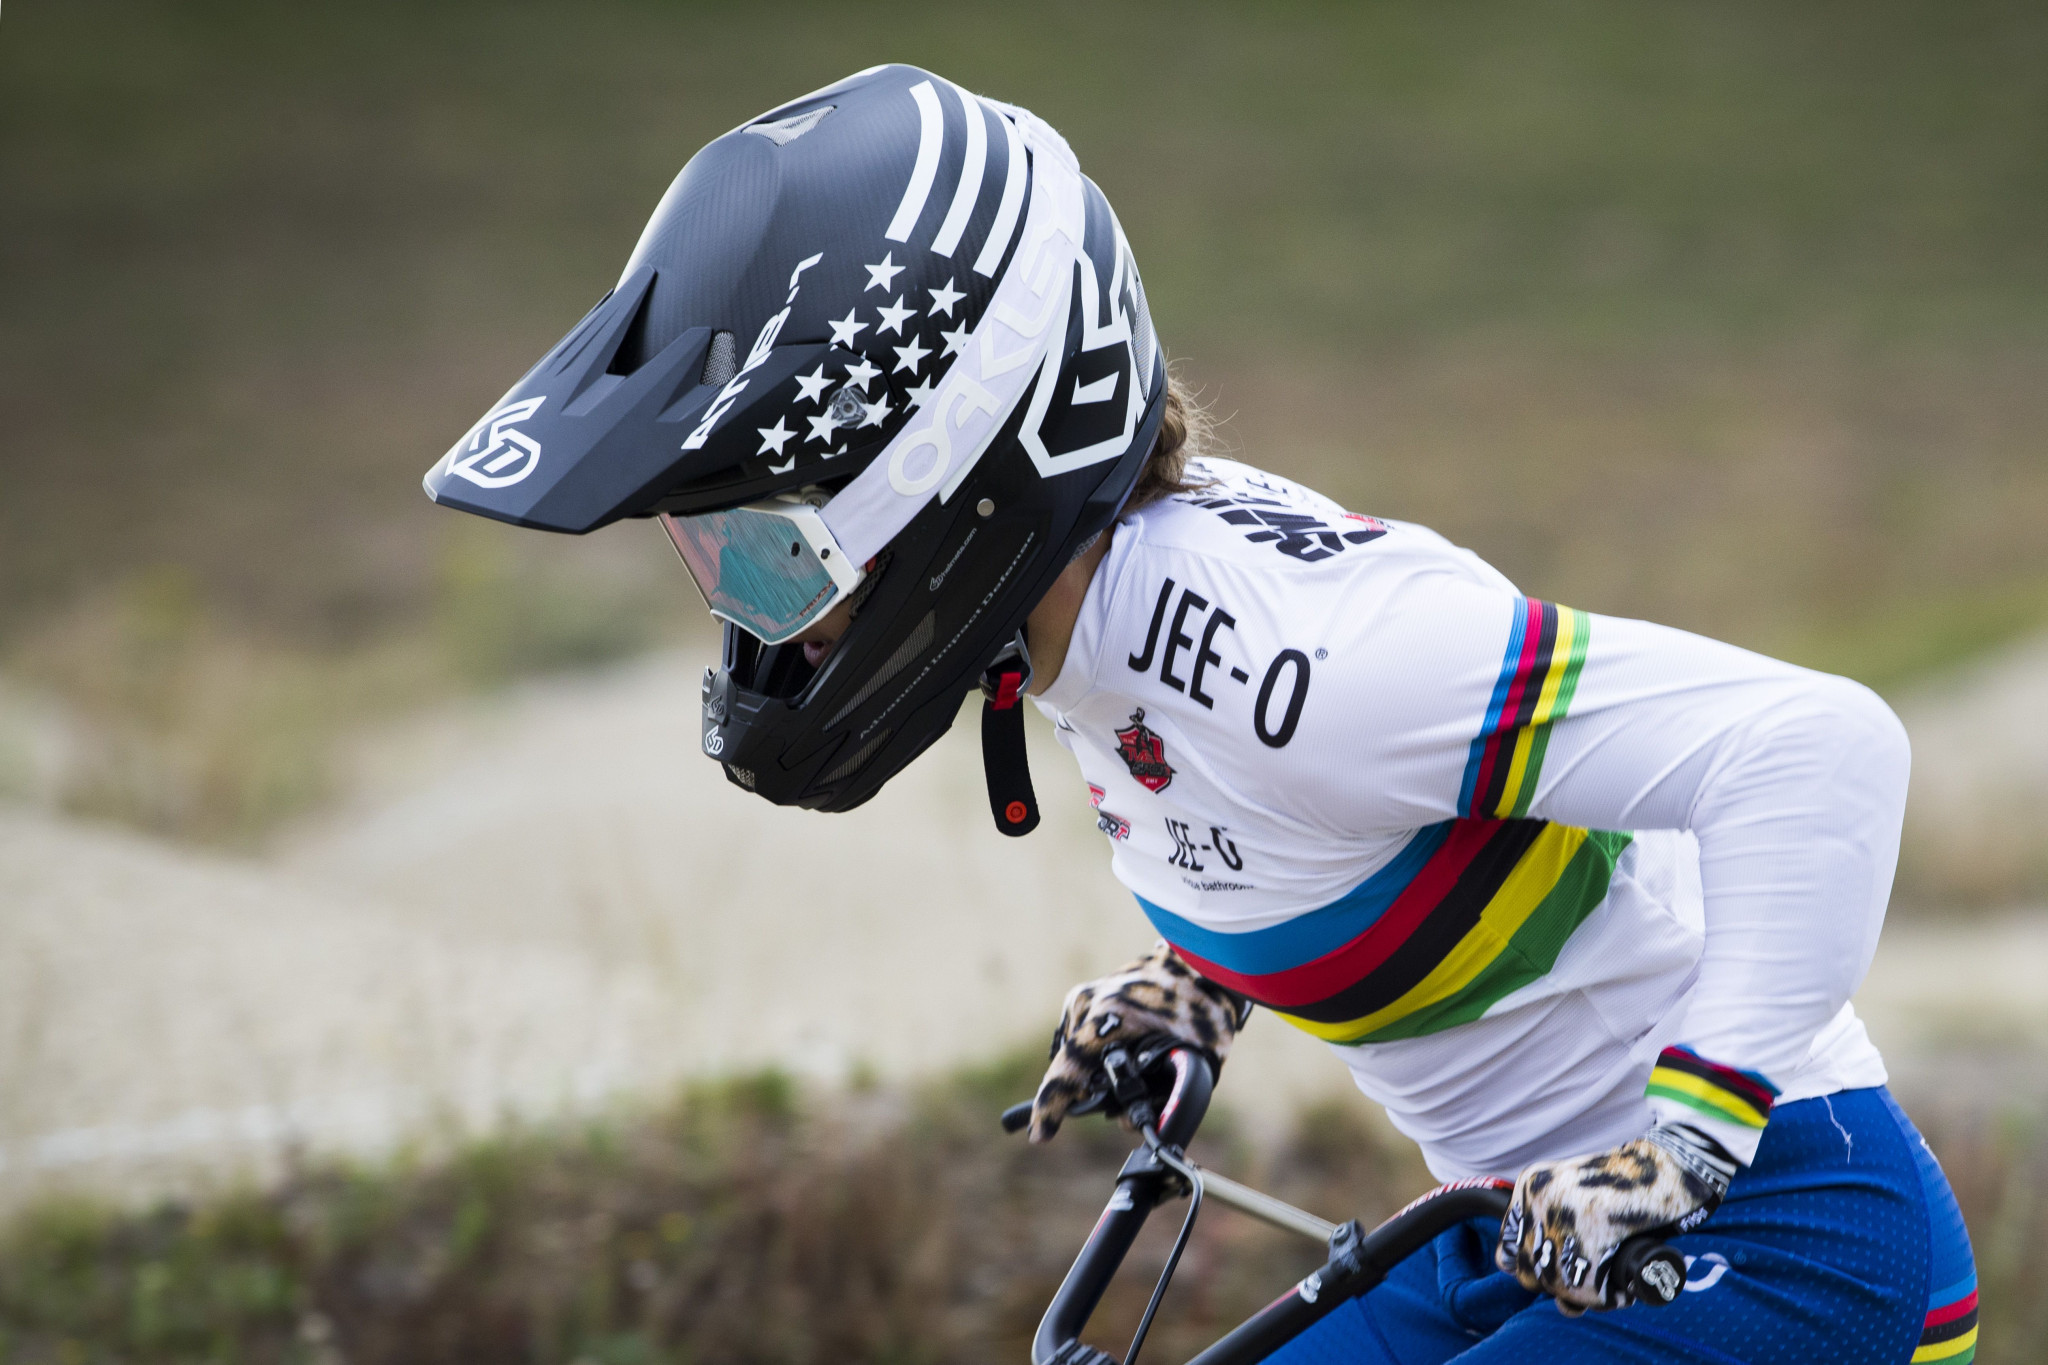 Smulders favourite to retain women's title at BMX World Championships